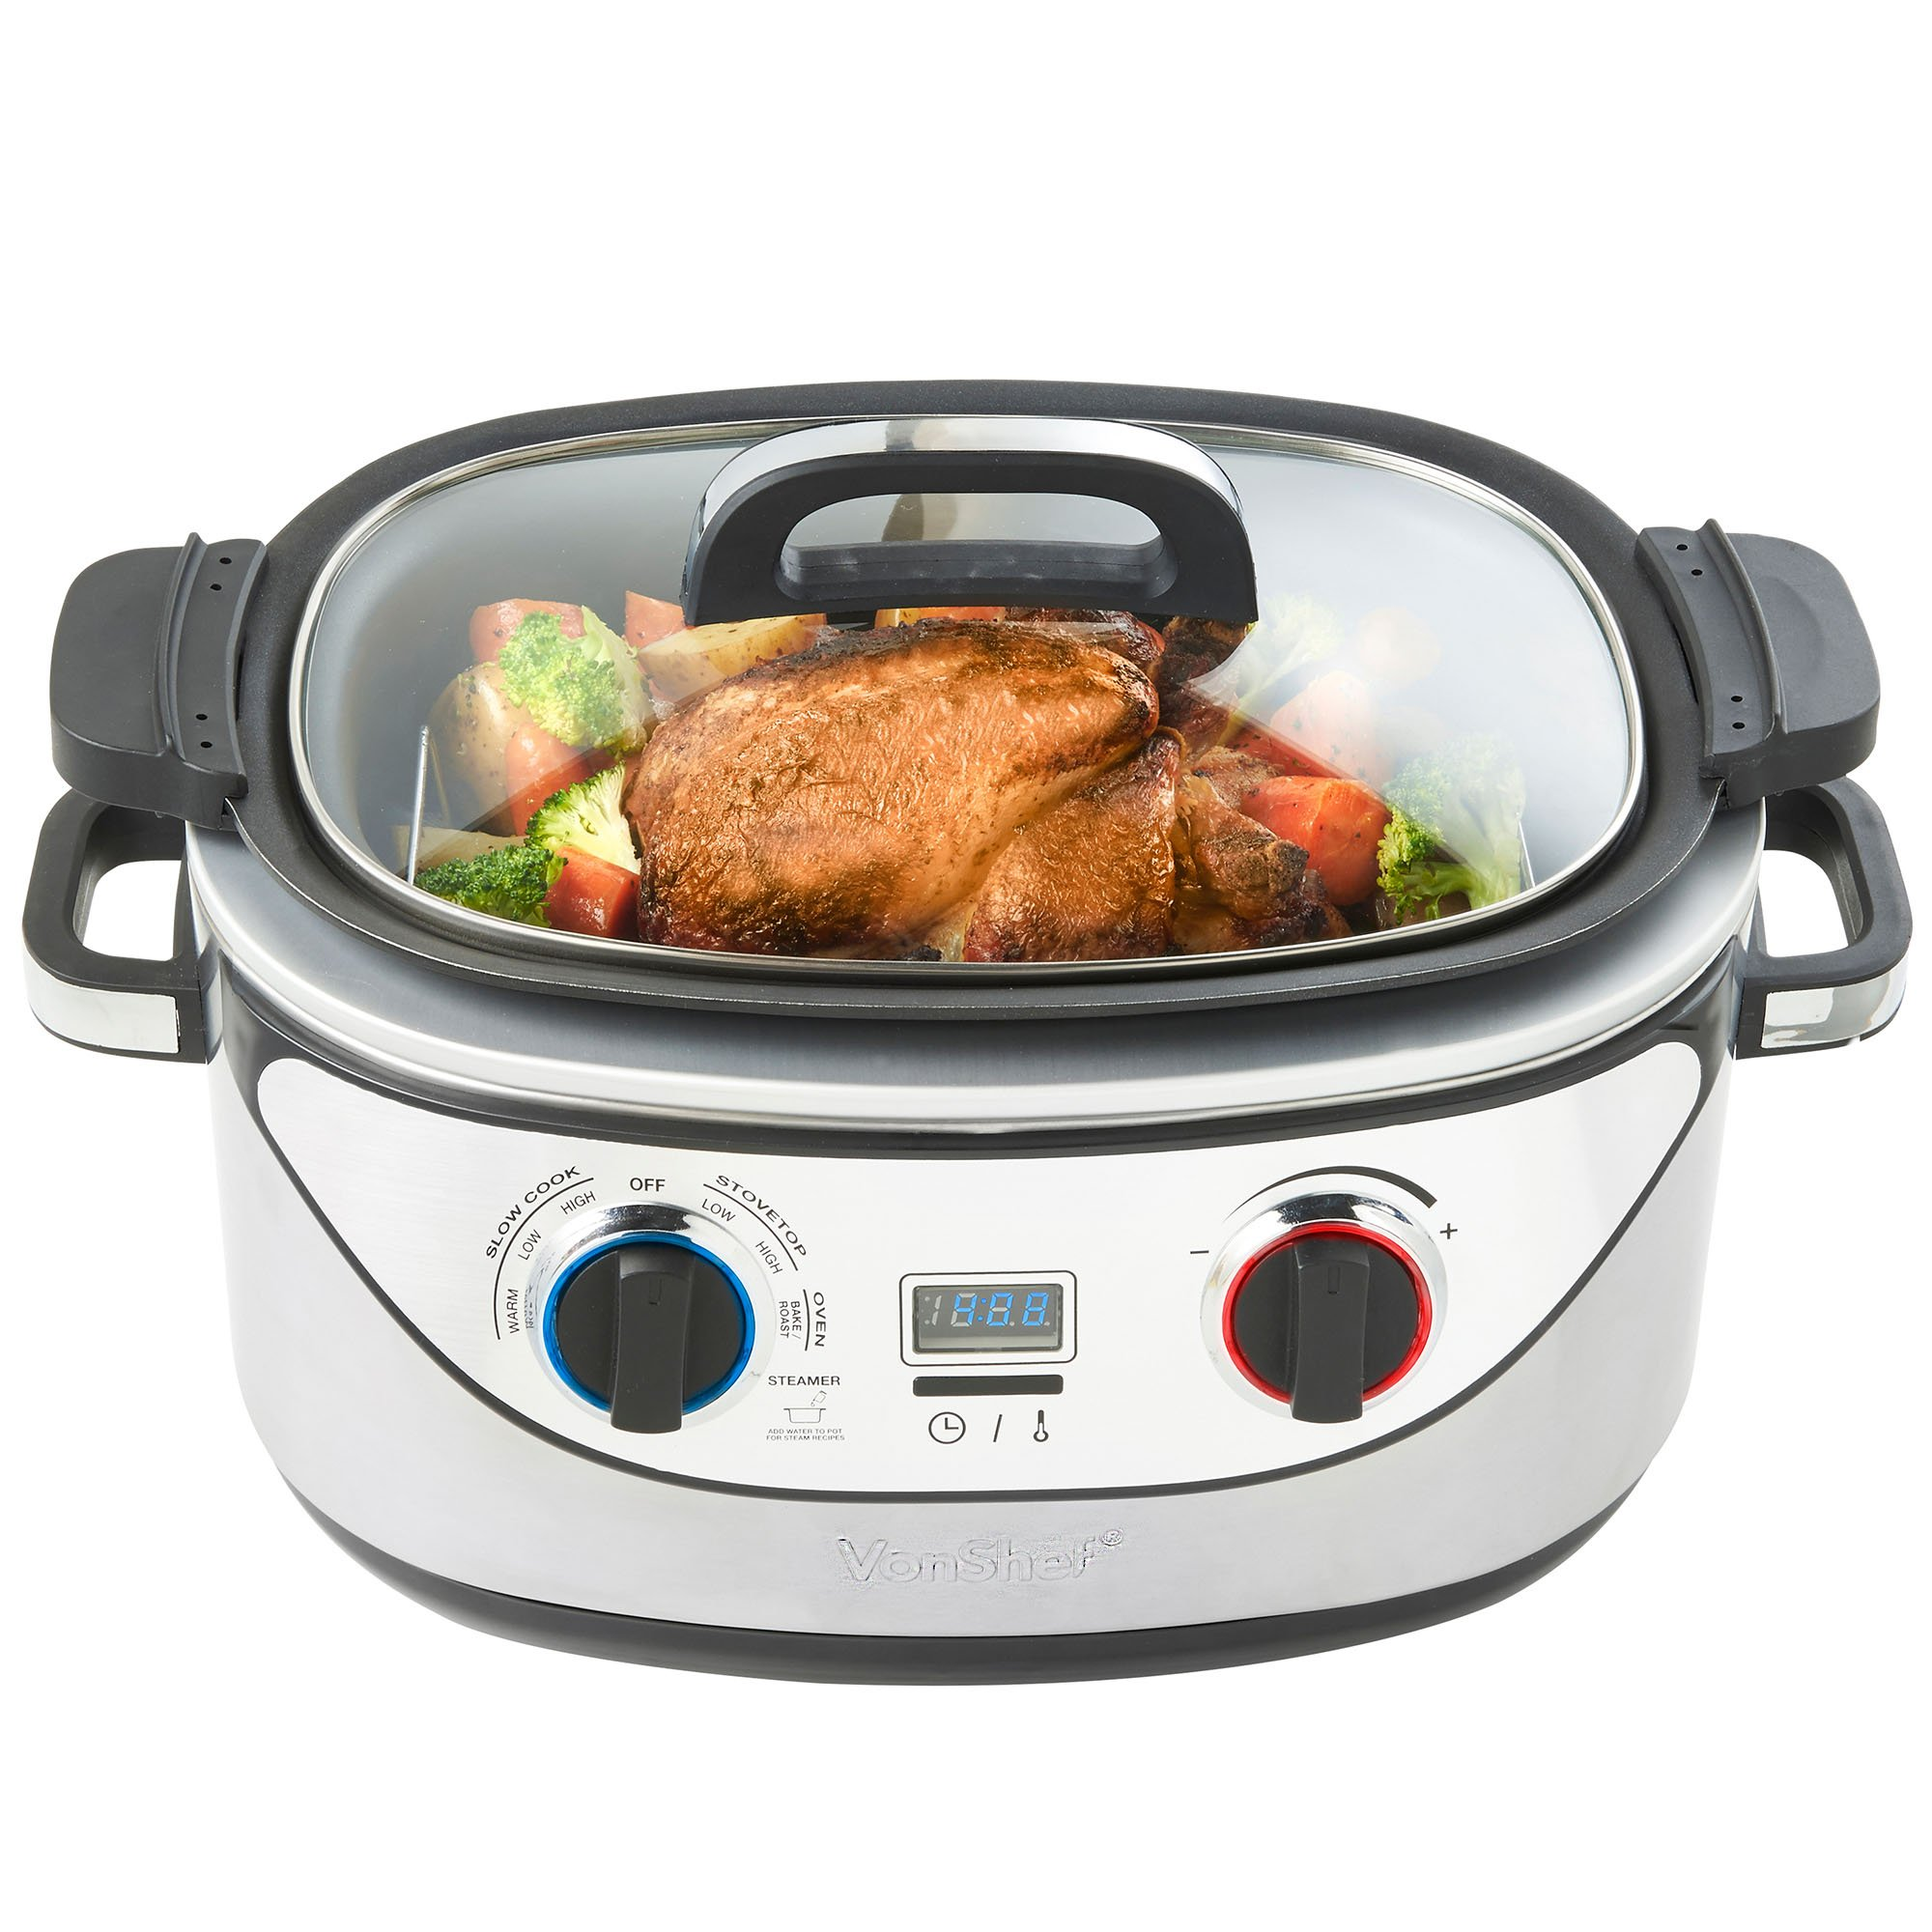 VonShef 8 in 1 Multi Cooker 5-Quart Stainless Steel - Slow Cook, Simmer, Sear, Roast, Bake, Steam & Warm